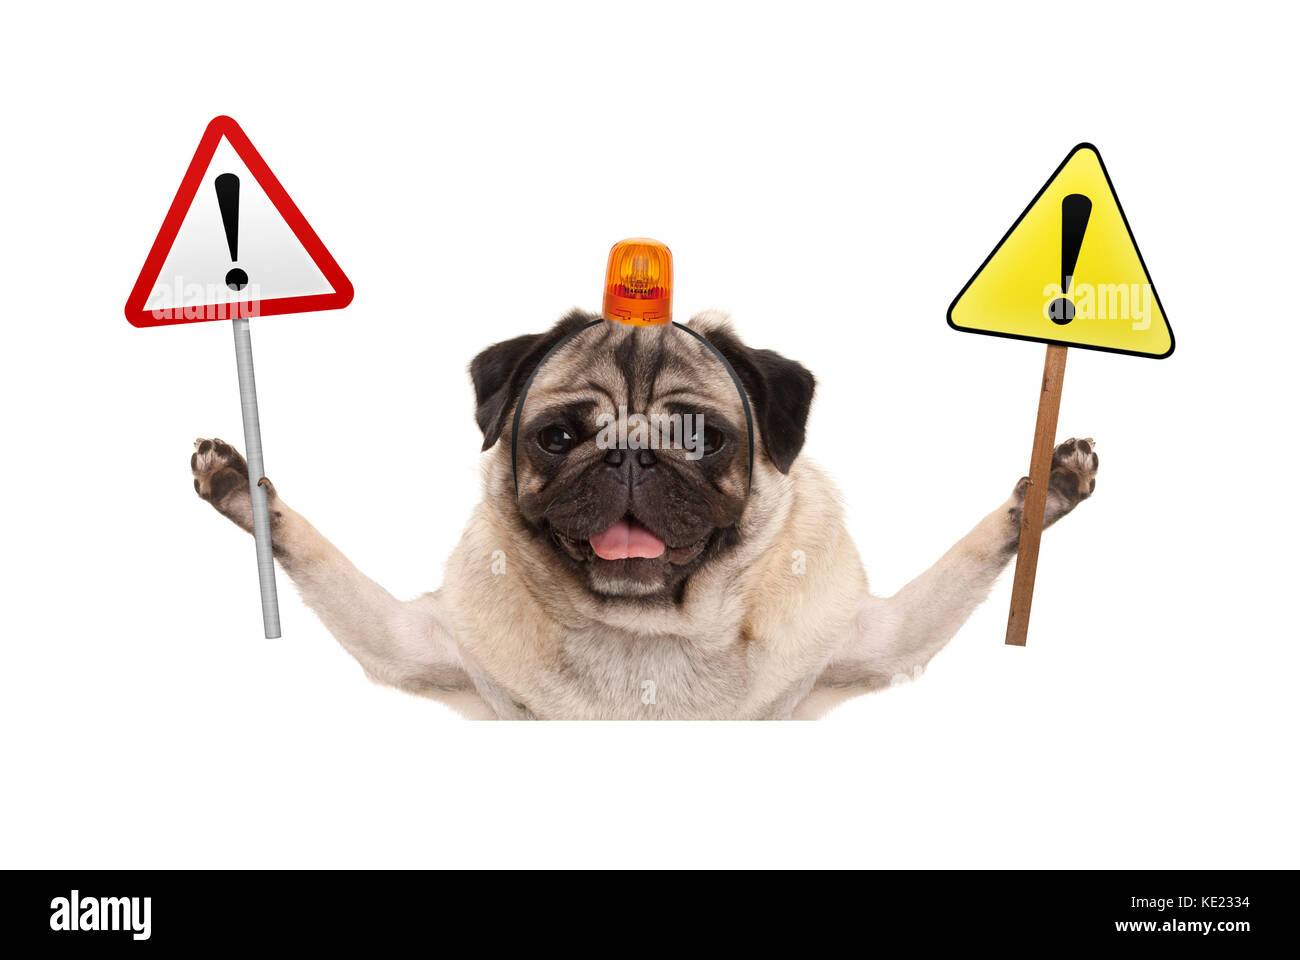 smiling pug dog holding up stop sign and yellow  exclamation mark sign, with orange flashing light on head, isolated - Stock Image